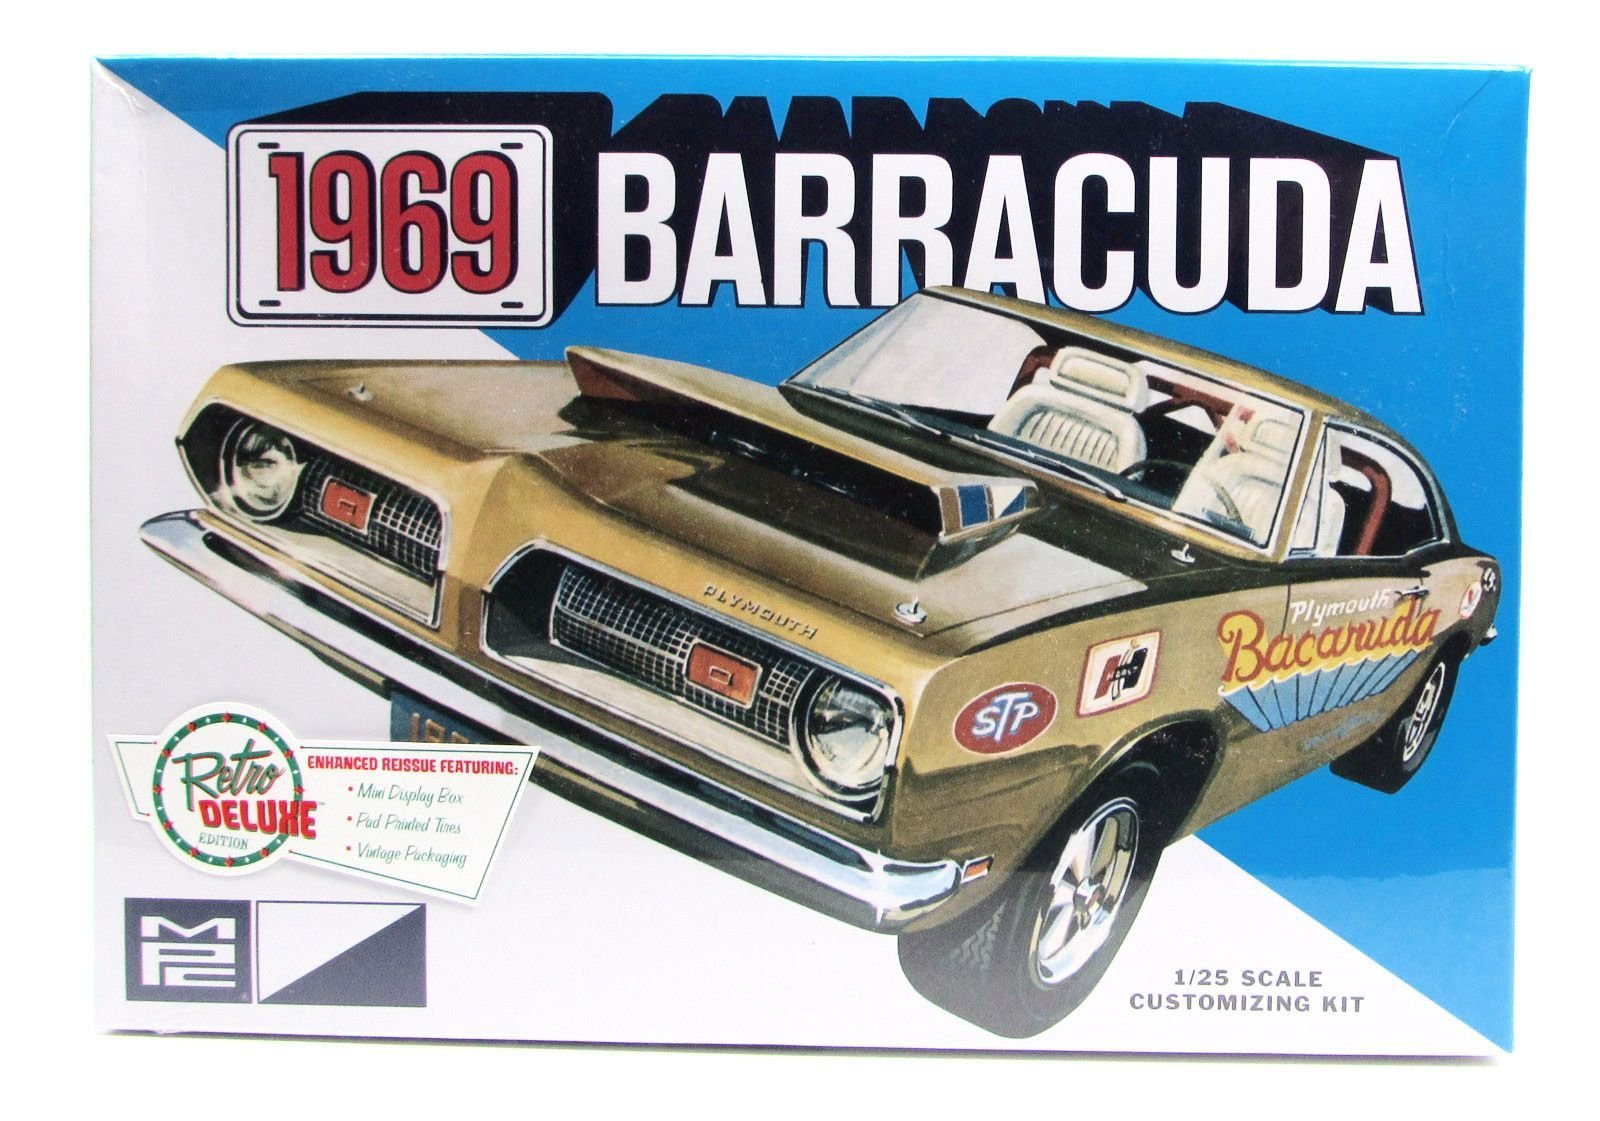 1969 Barracuda Mpc 832 1 25 Plymouth New Car Model Kit Model Cars Kits Car Model Model Kit